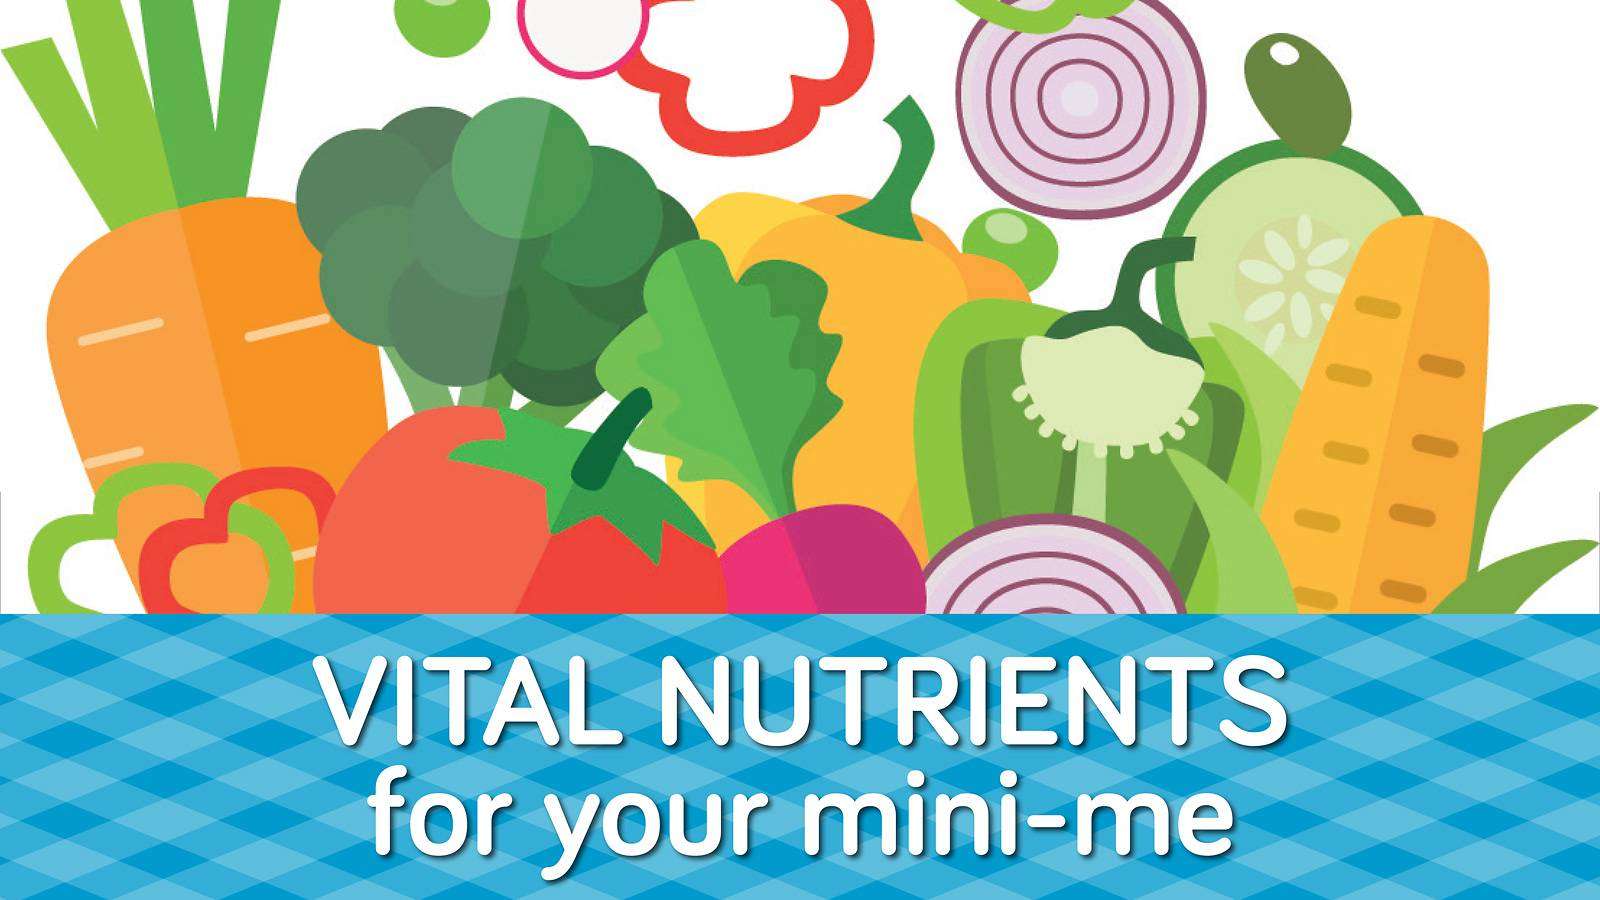 tots---12-must-have-nutrients-for-your-mini-me-1